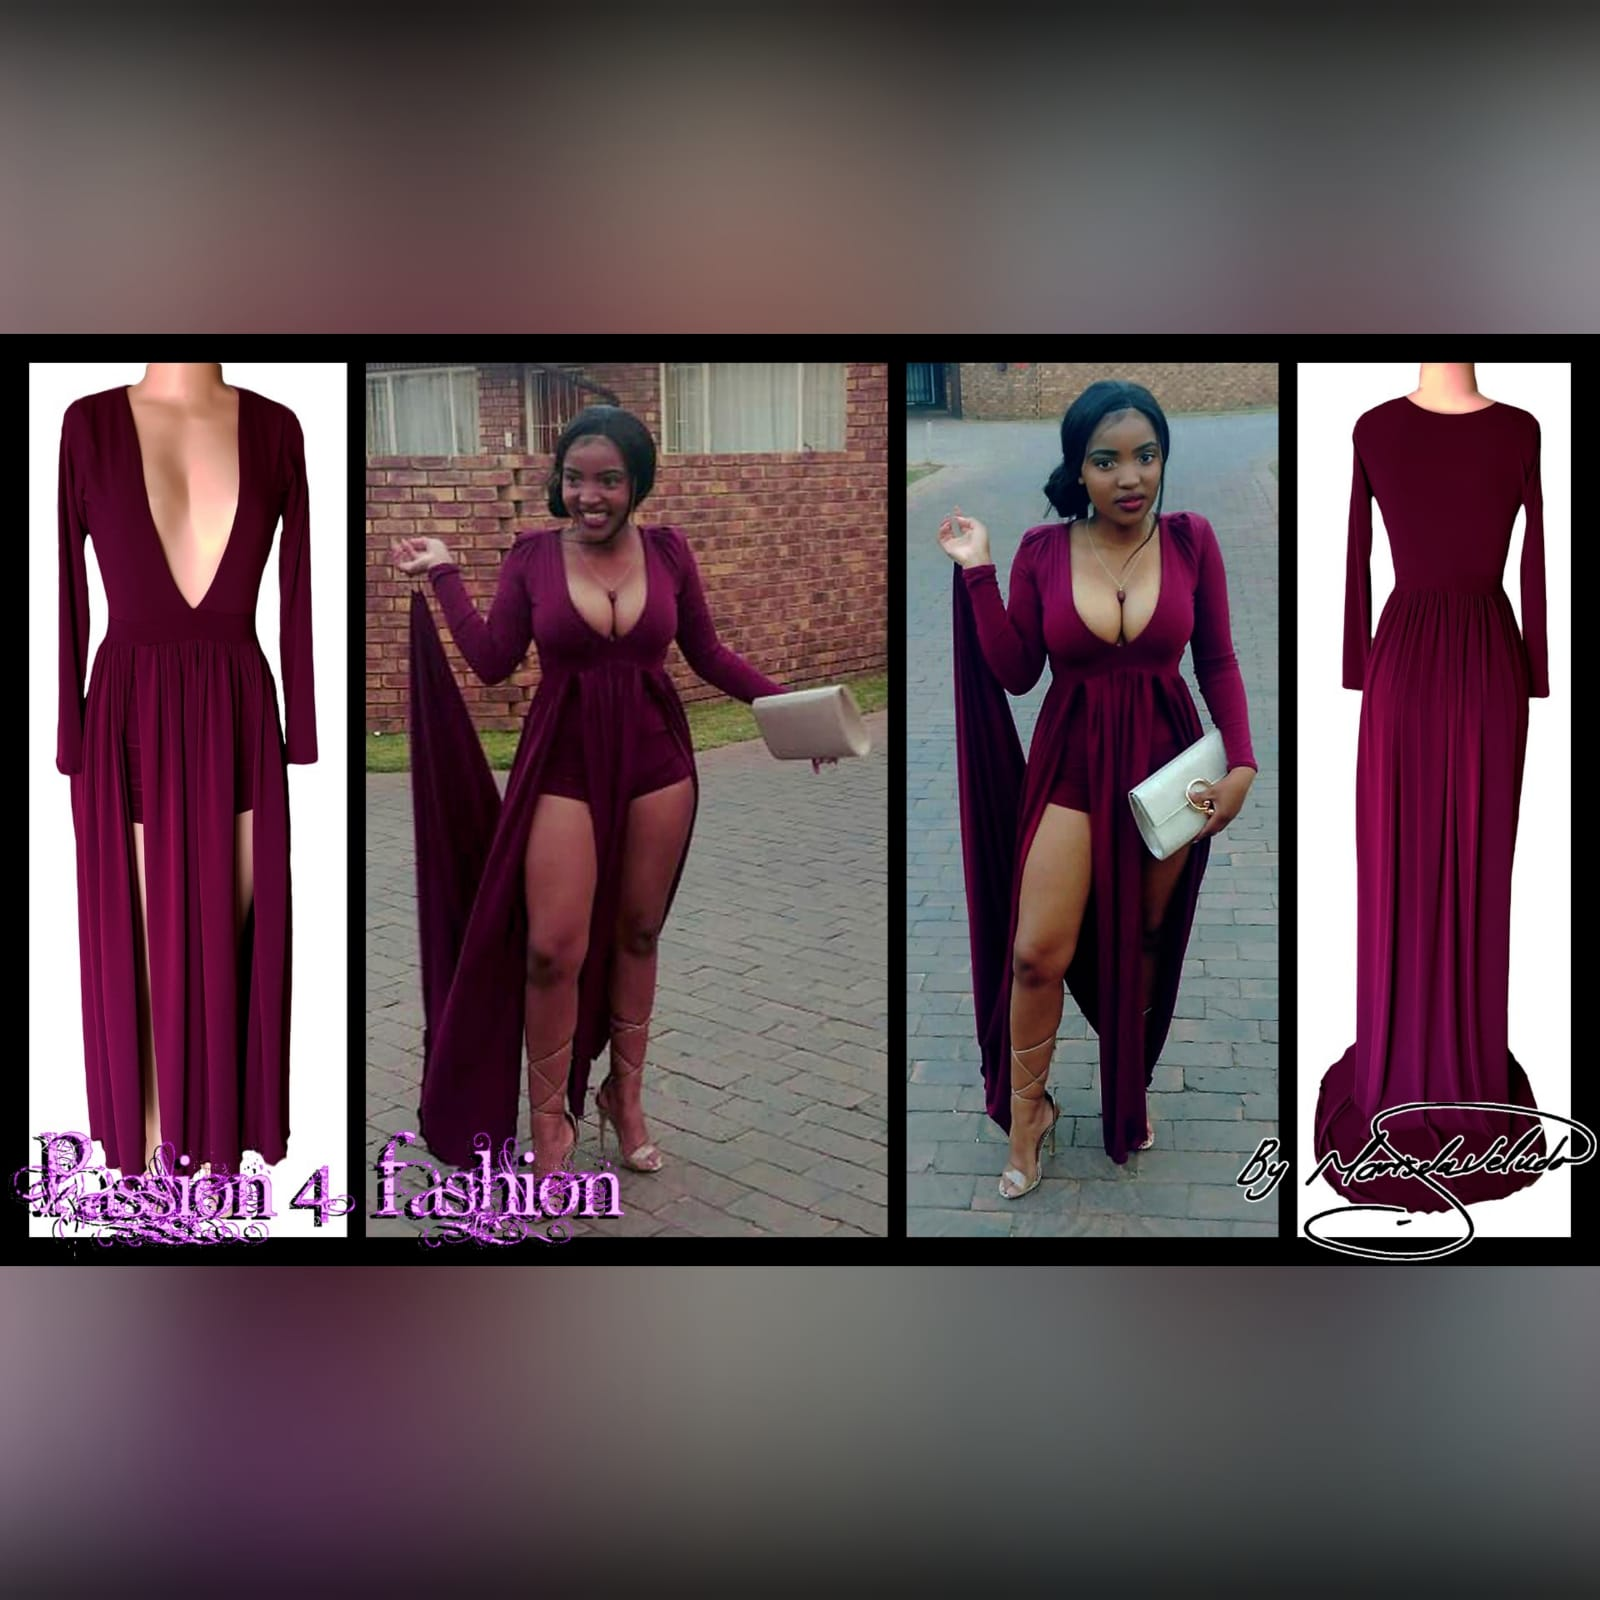 Plum flowy plunging neckline prom dress 5 plum flowy plunging neckline prom dress with long sleeves & 2 high slits and a train with matching shorts.